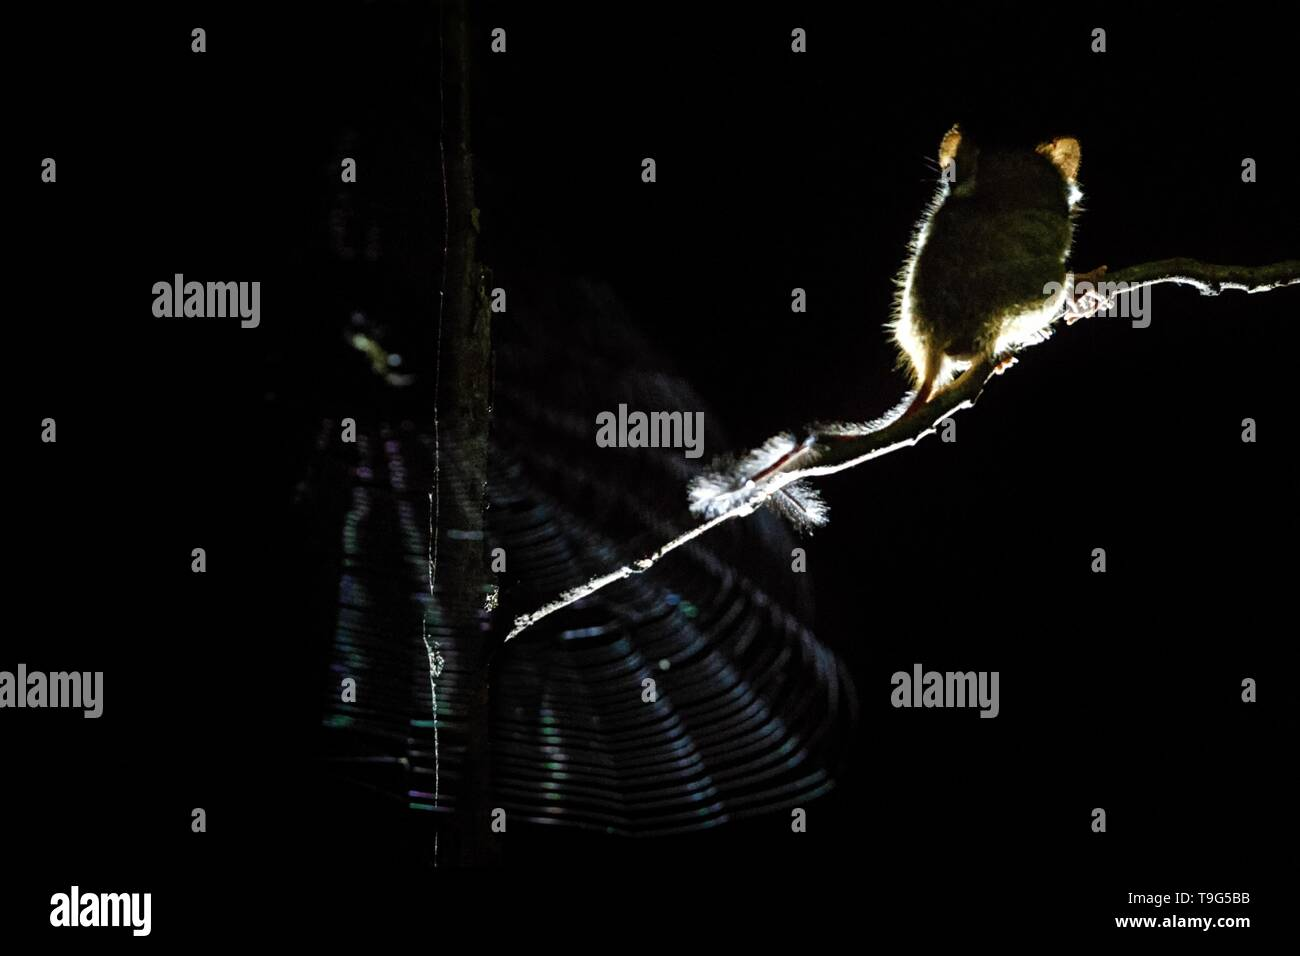 Spectral Tarsier, Tarsius, endemic nocturnal mammal watching spinder in the net, cute primate in large ficus tree in jungle, Tangkoko National Park, S - Stock Image